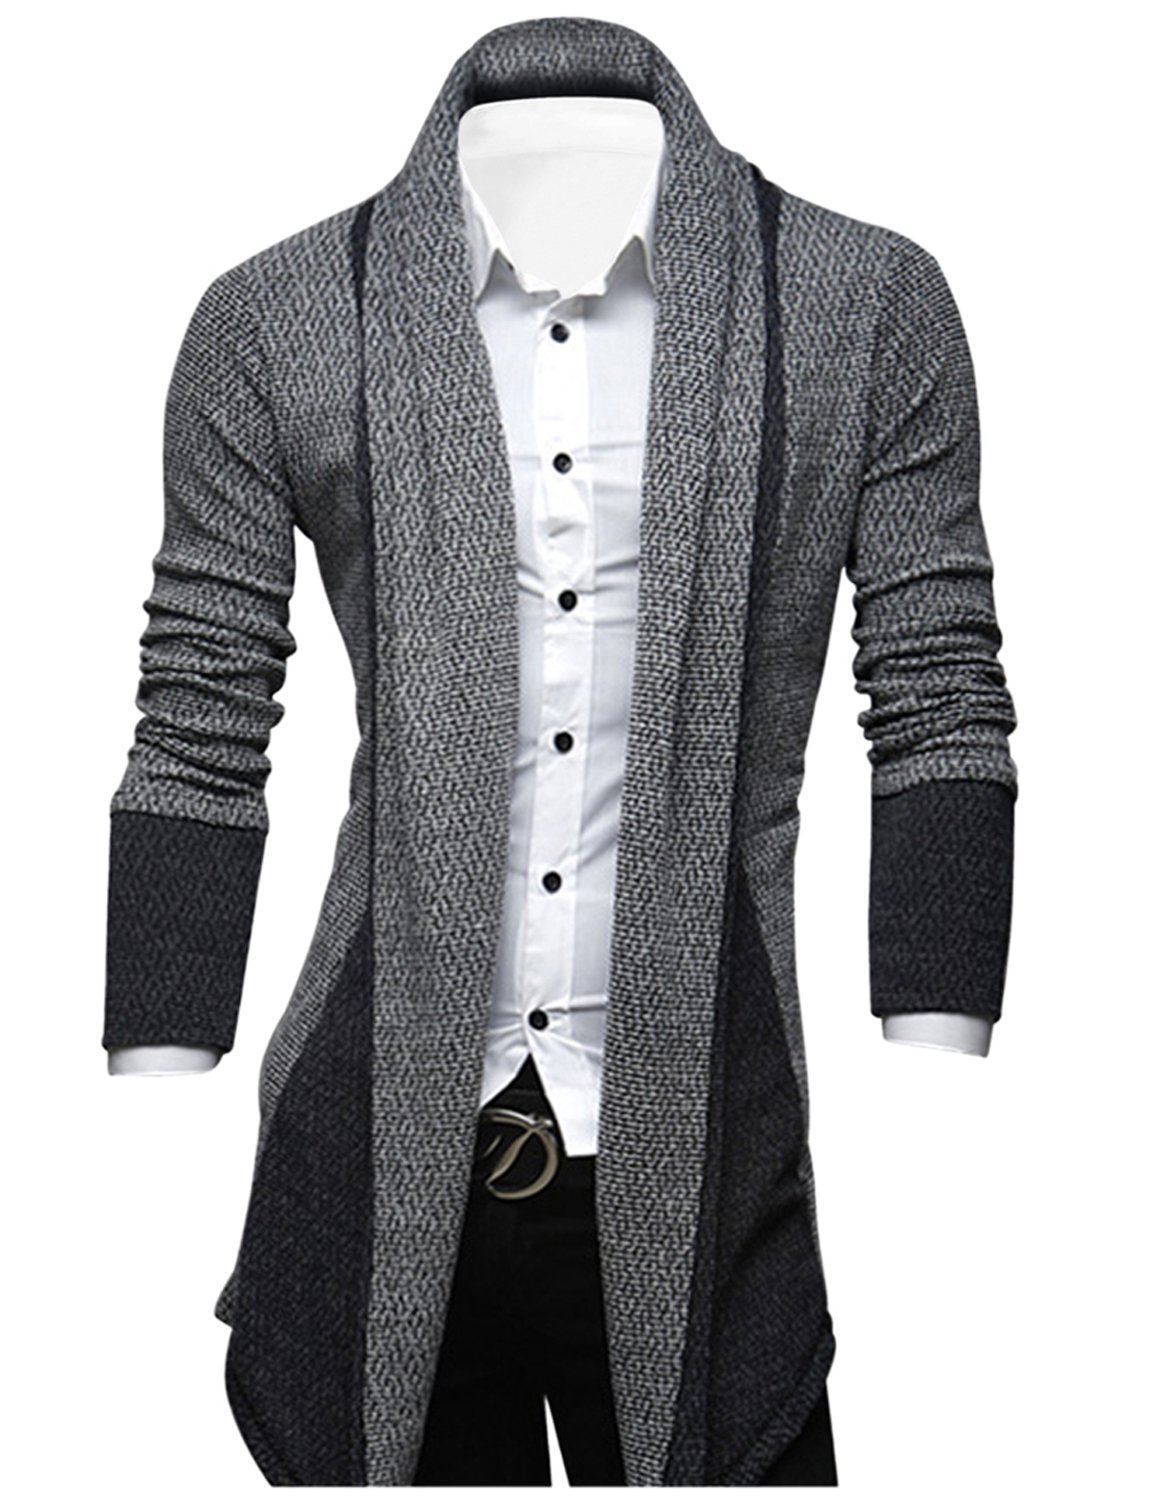 Tom's Ware Mens Classic Fashion Marled Open-Front Shawl Collar Cardigan TWGG1308-GRAY-US L